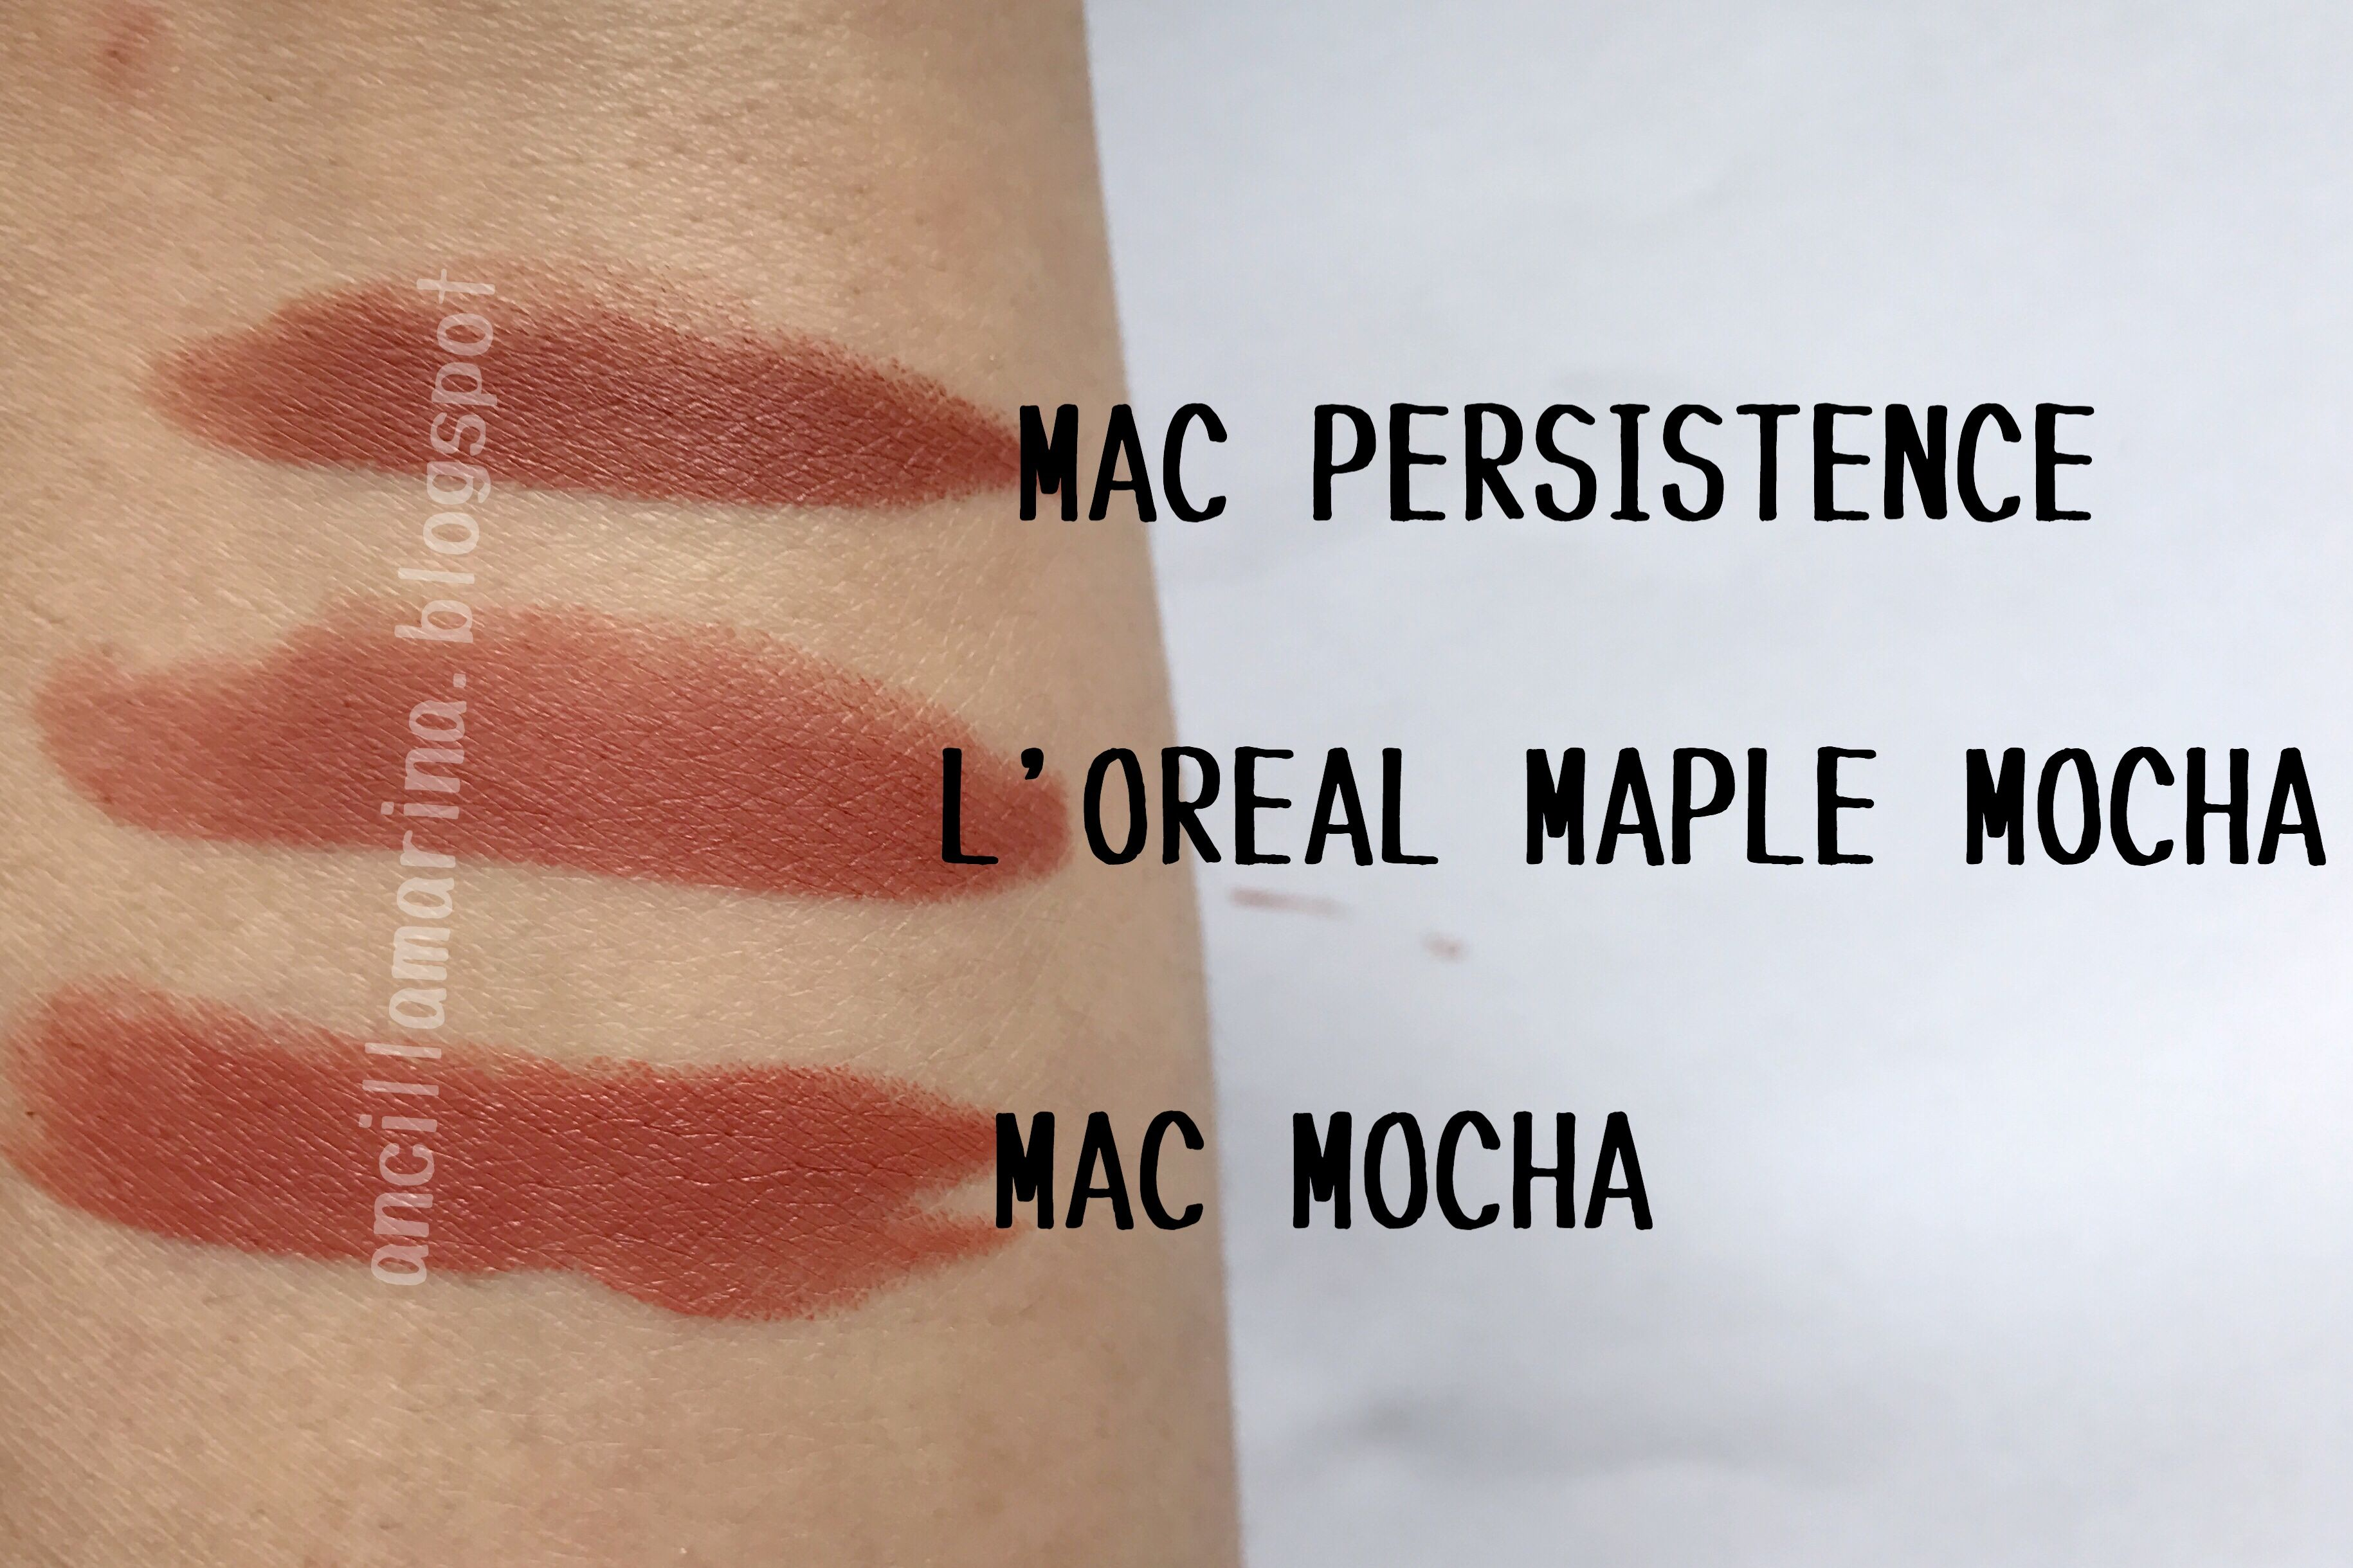 Mac Persistence Vs Loreal Maple Mocha In Real Life Brunbrun Paris Ultra Rich Lipstick Gingersnap Is The Most Brown Than Others More Pink